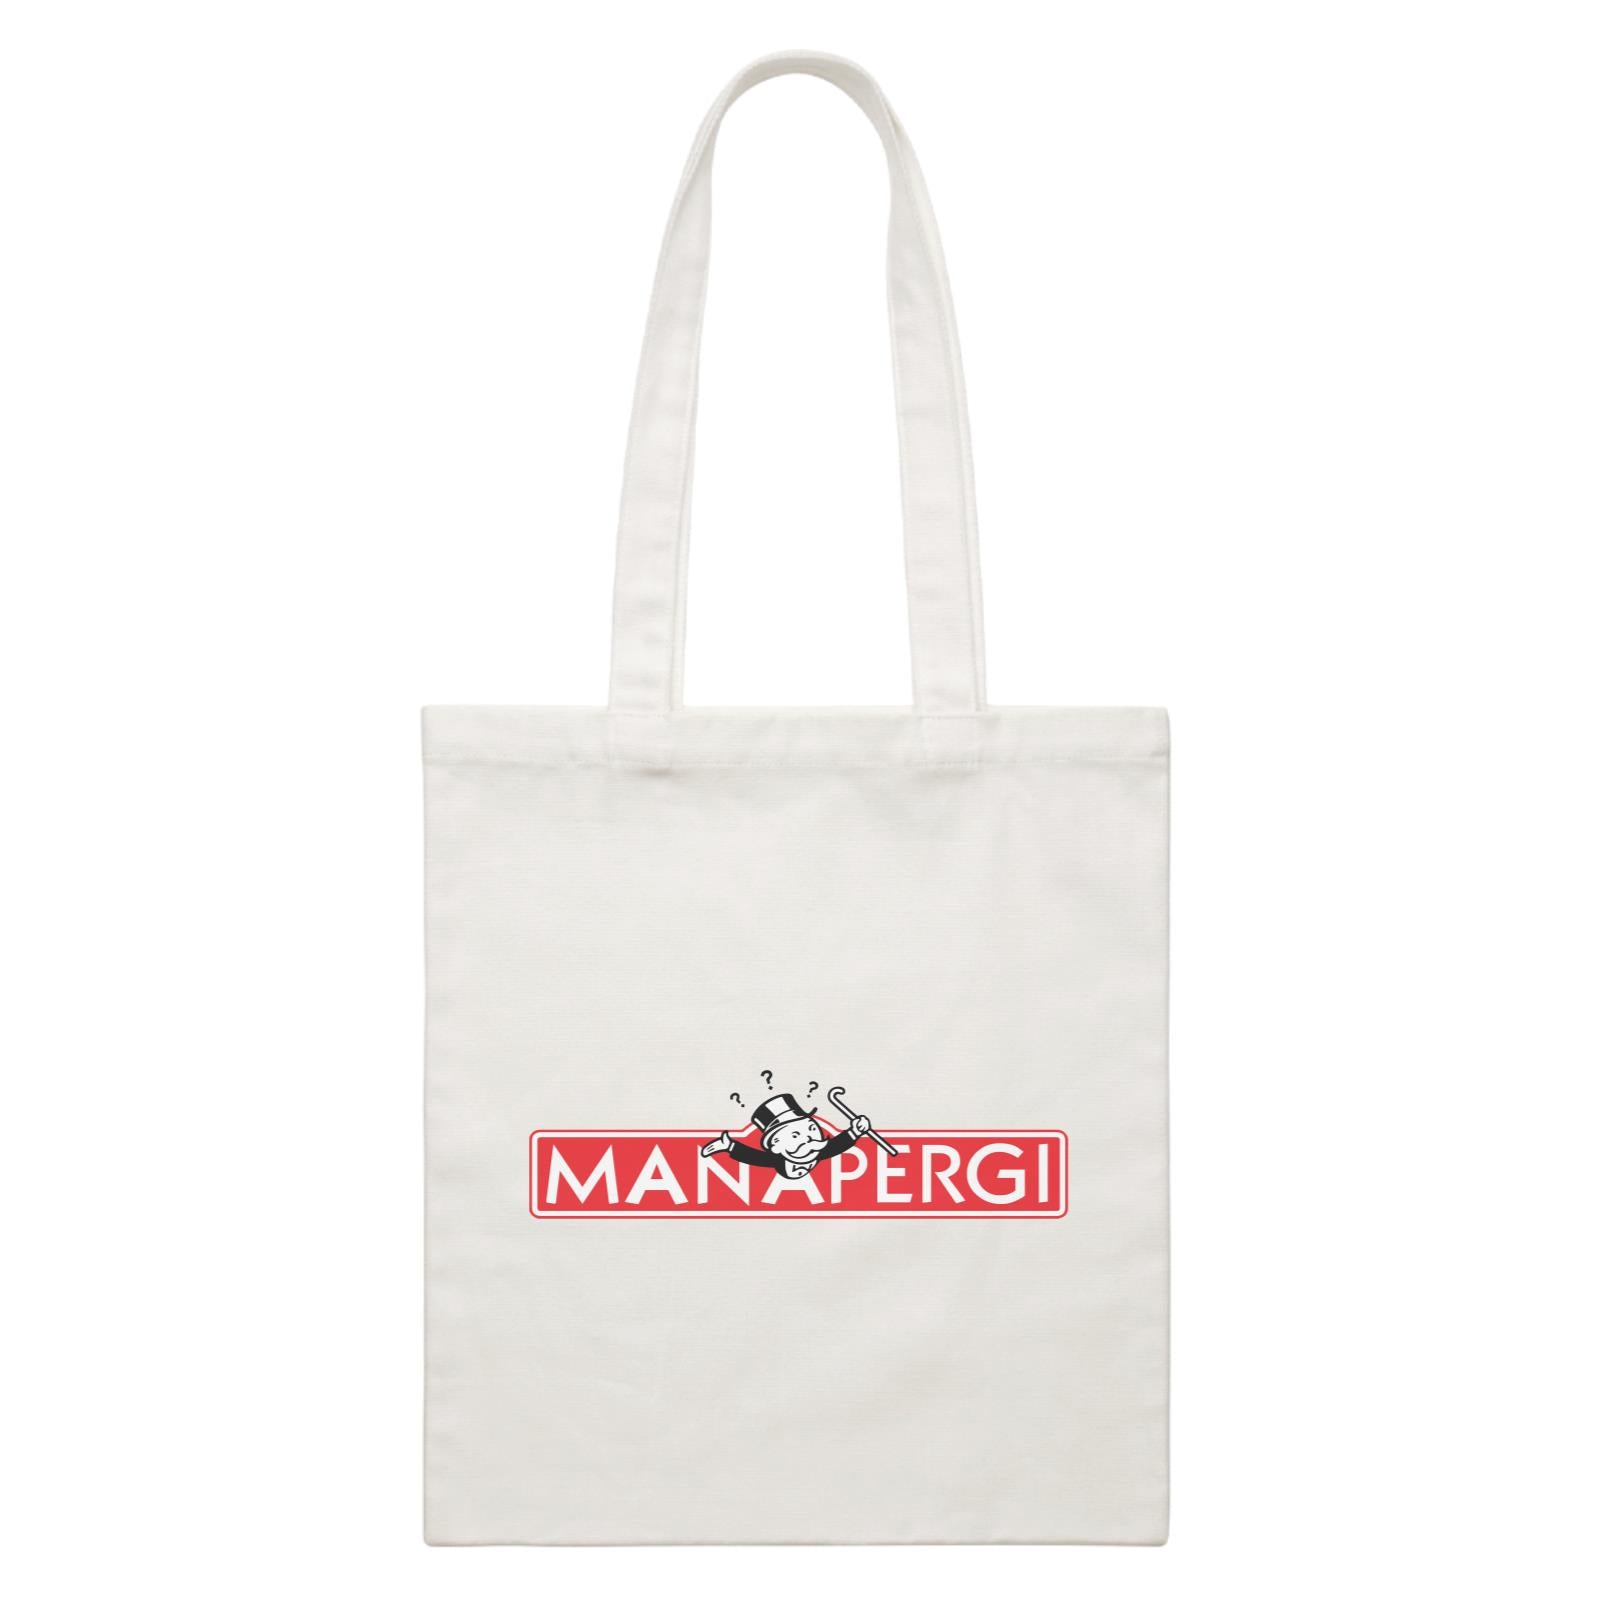 Slang Statement Manapergi Accessories White Canvas Bag